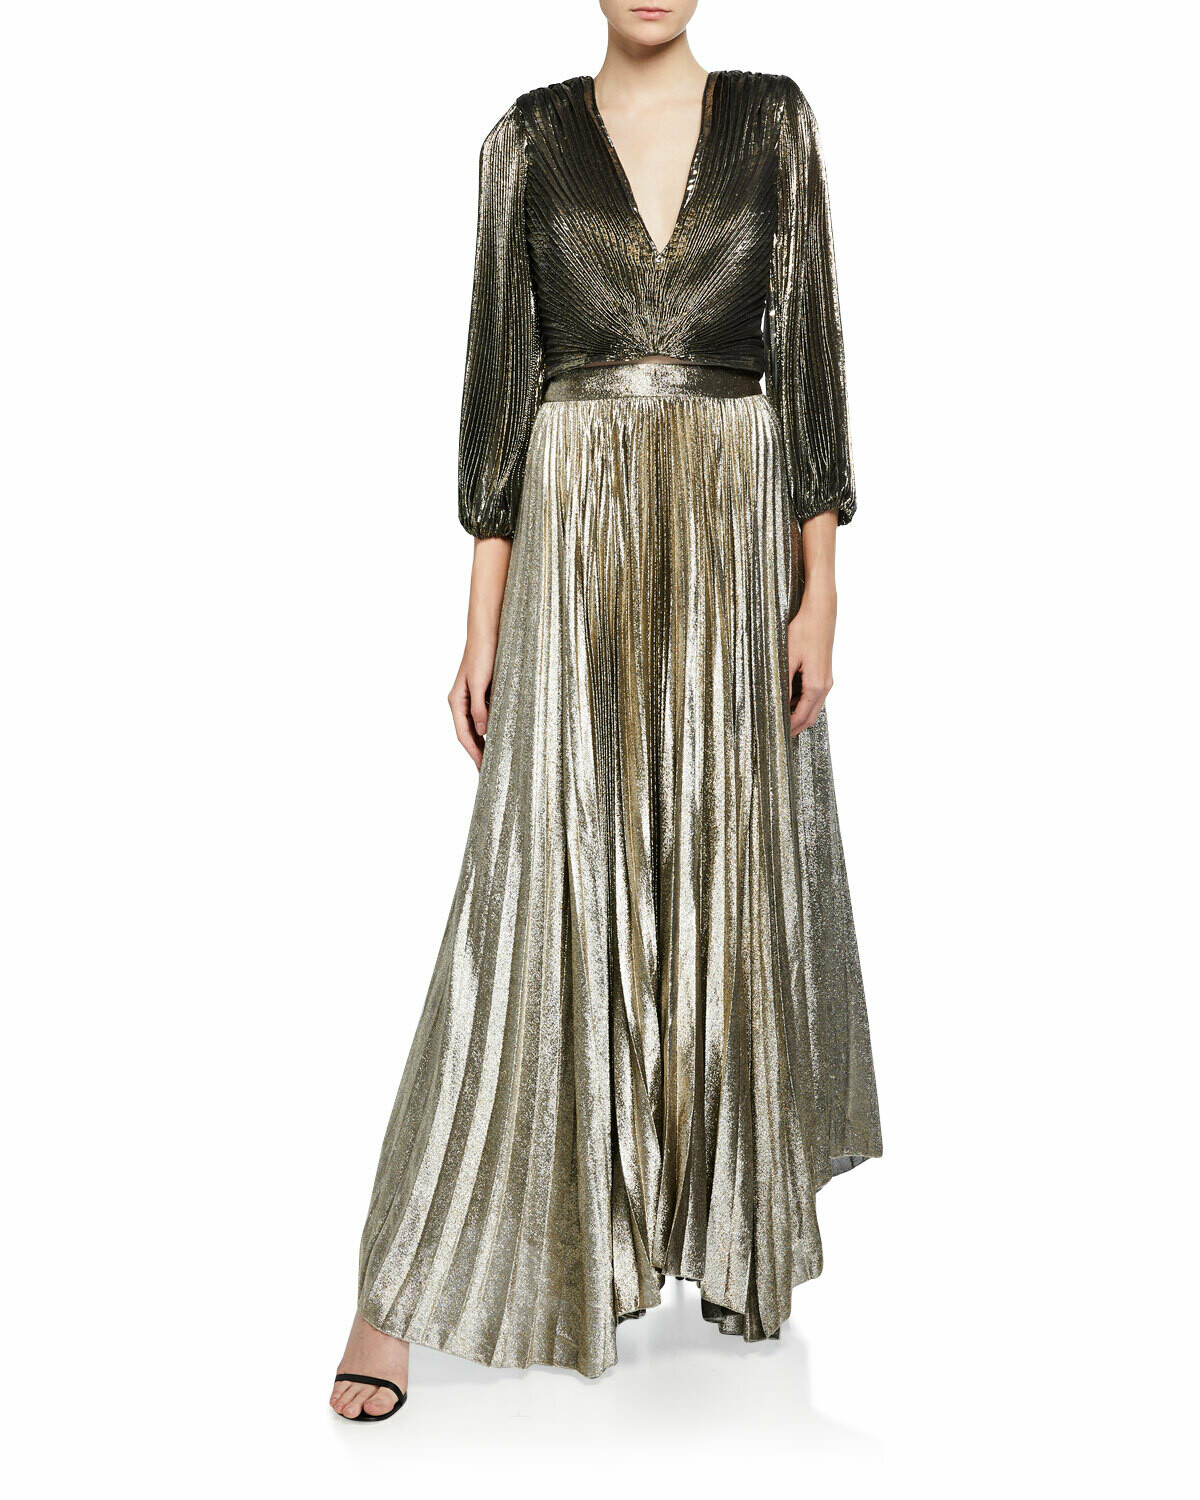 Alice & Olivia Katz Sunburst Pleated Maxi Skirt